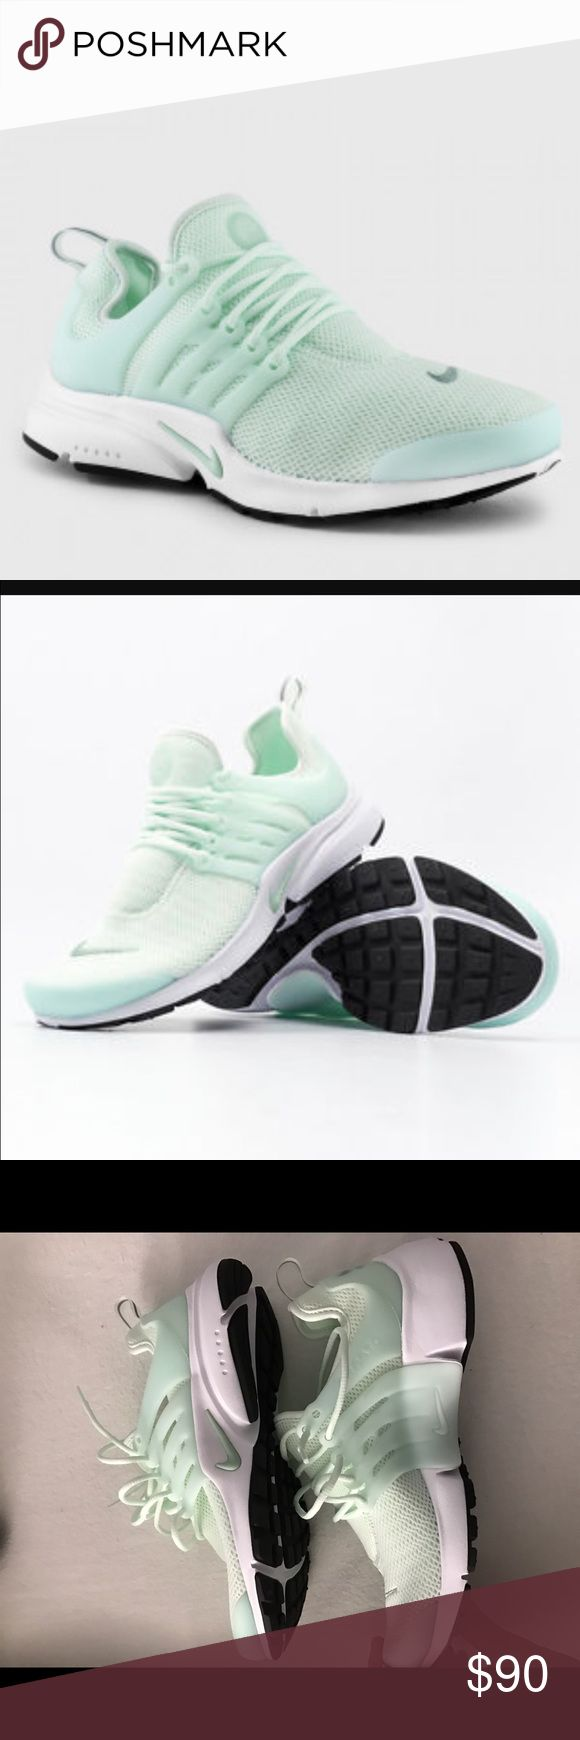 Home nike wmns air presto flyknit ultra midnight turquoise olive - Nike Women S Air Presto Size 7